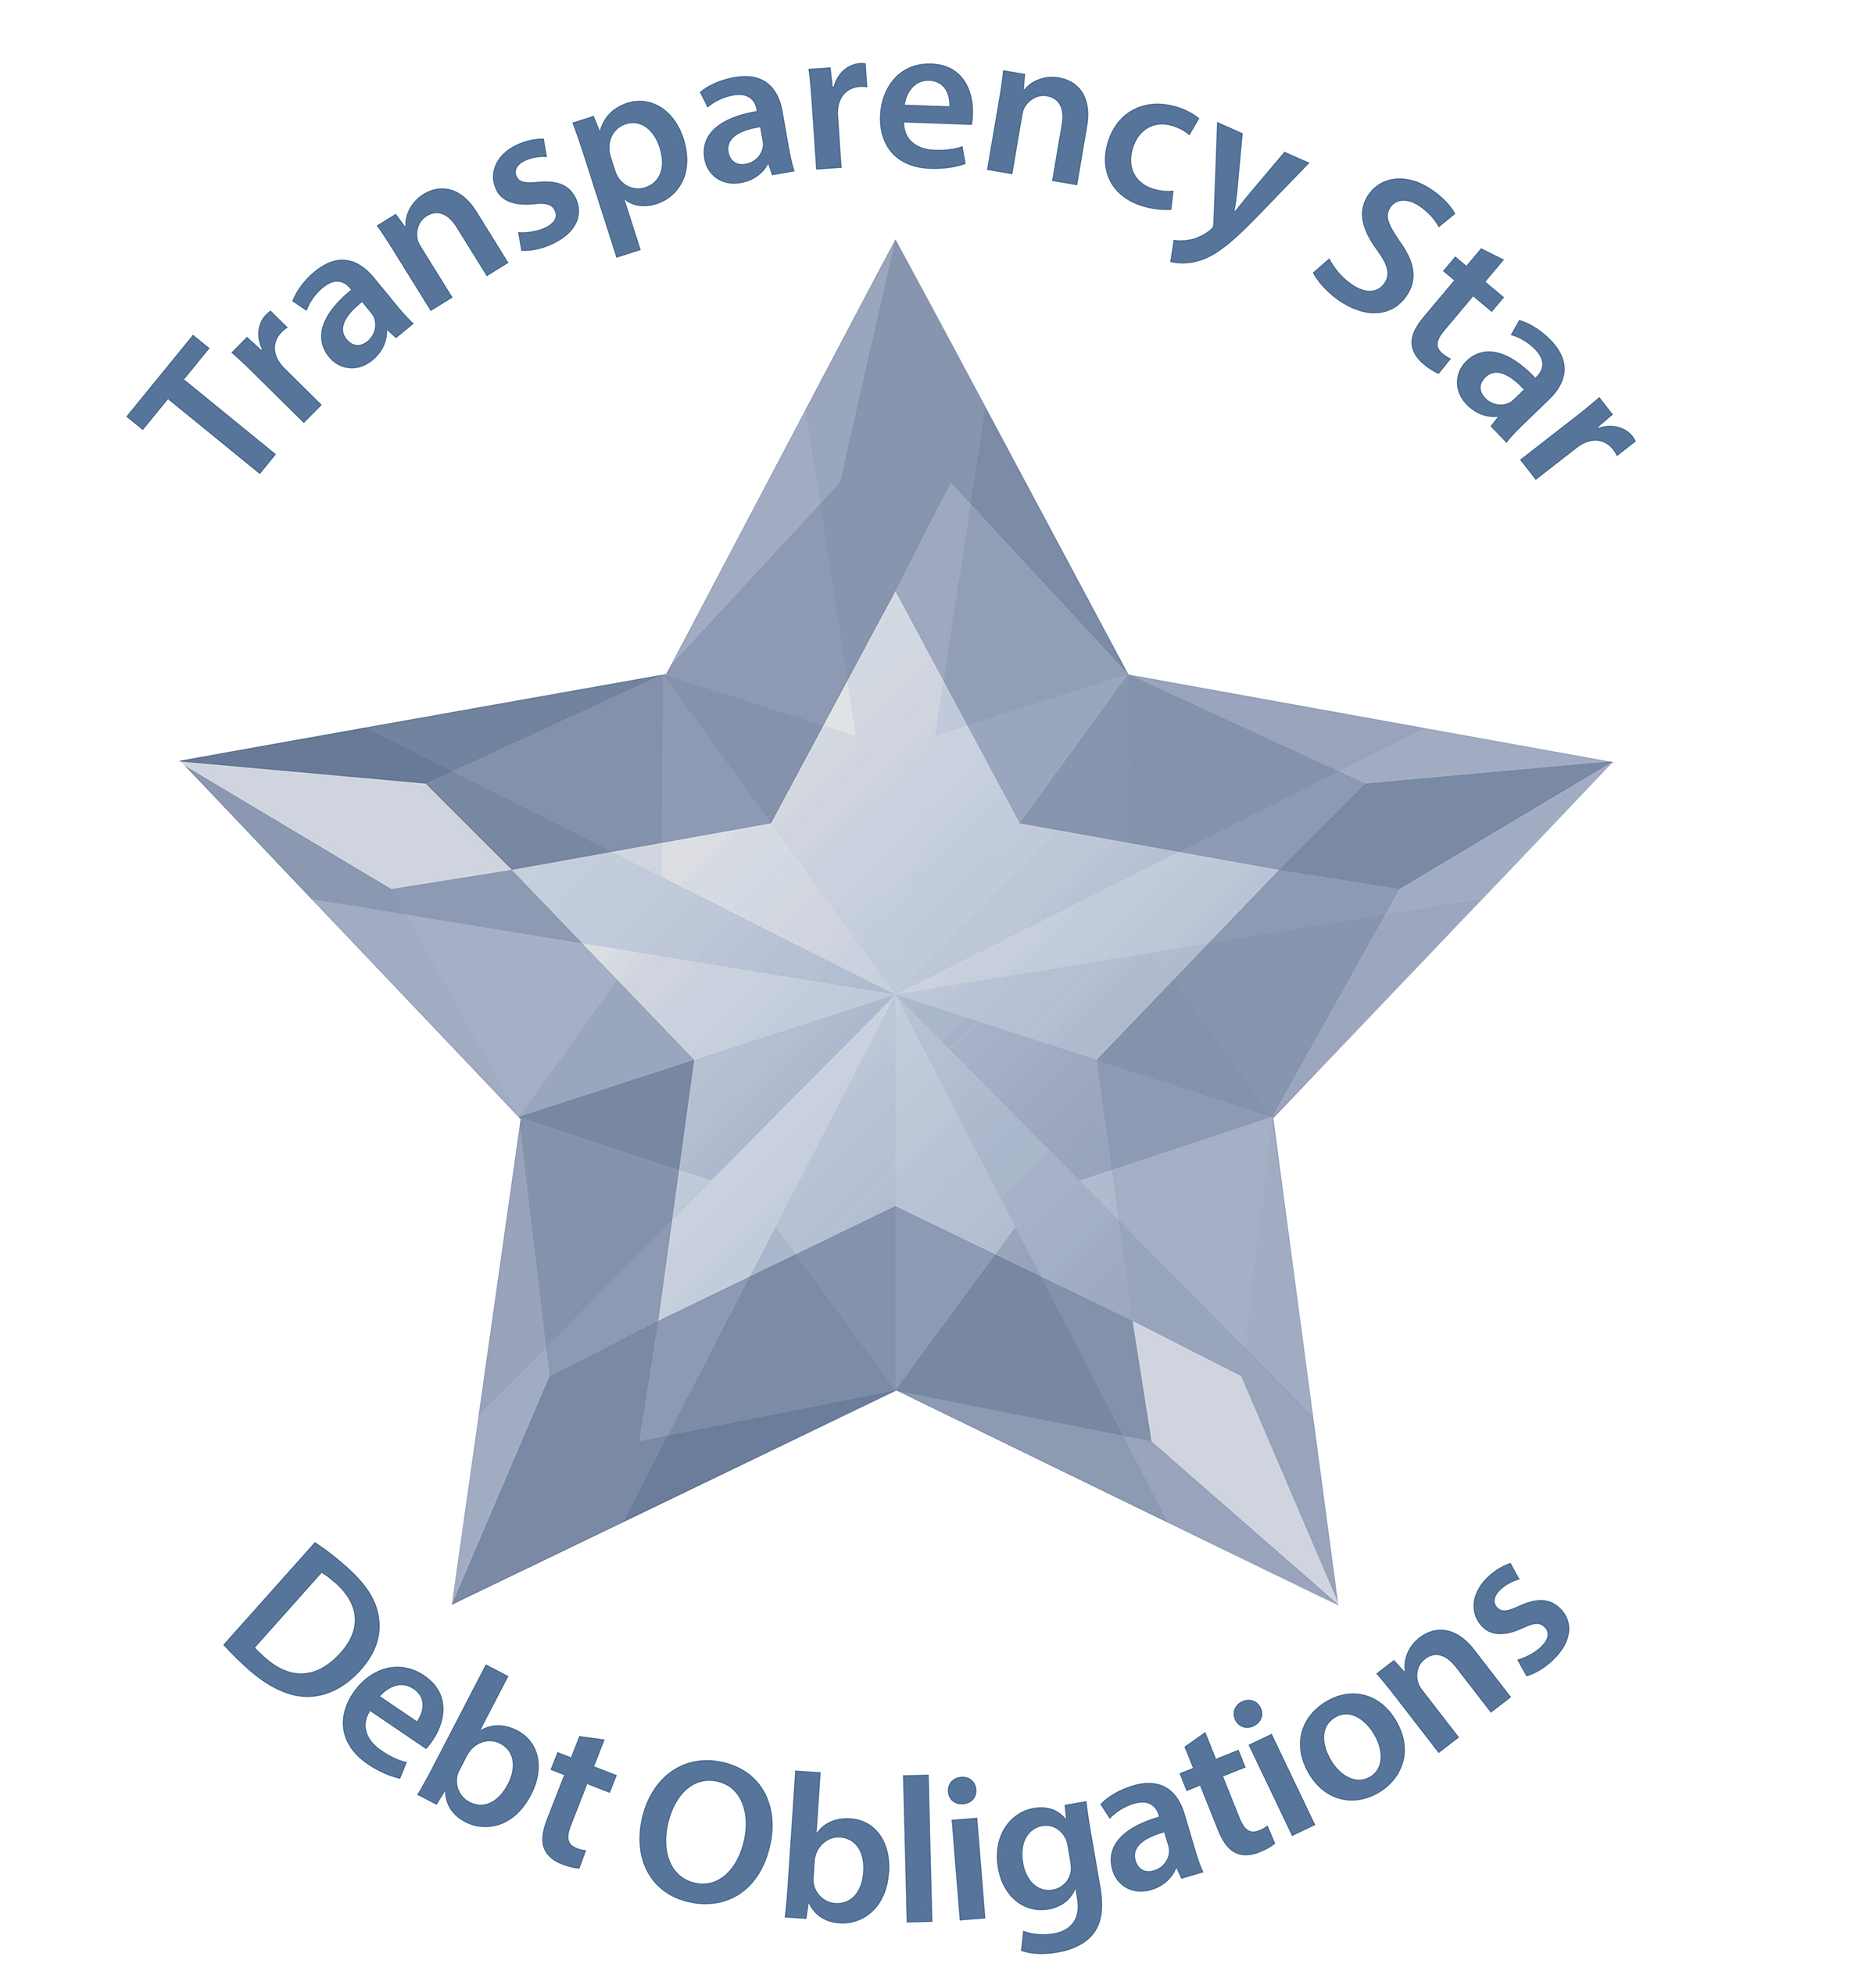 Transparency Star Debt Obligations Logo